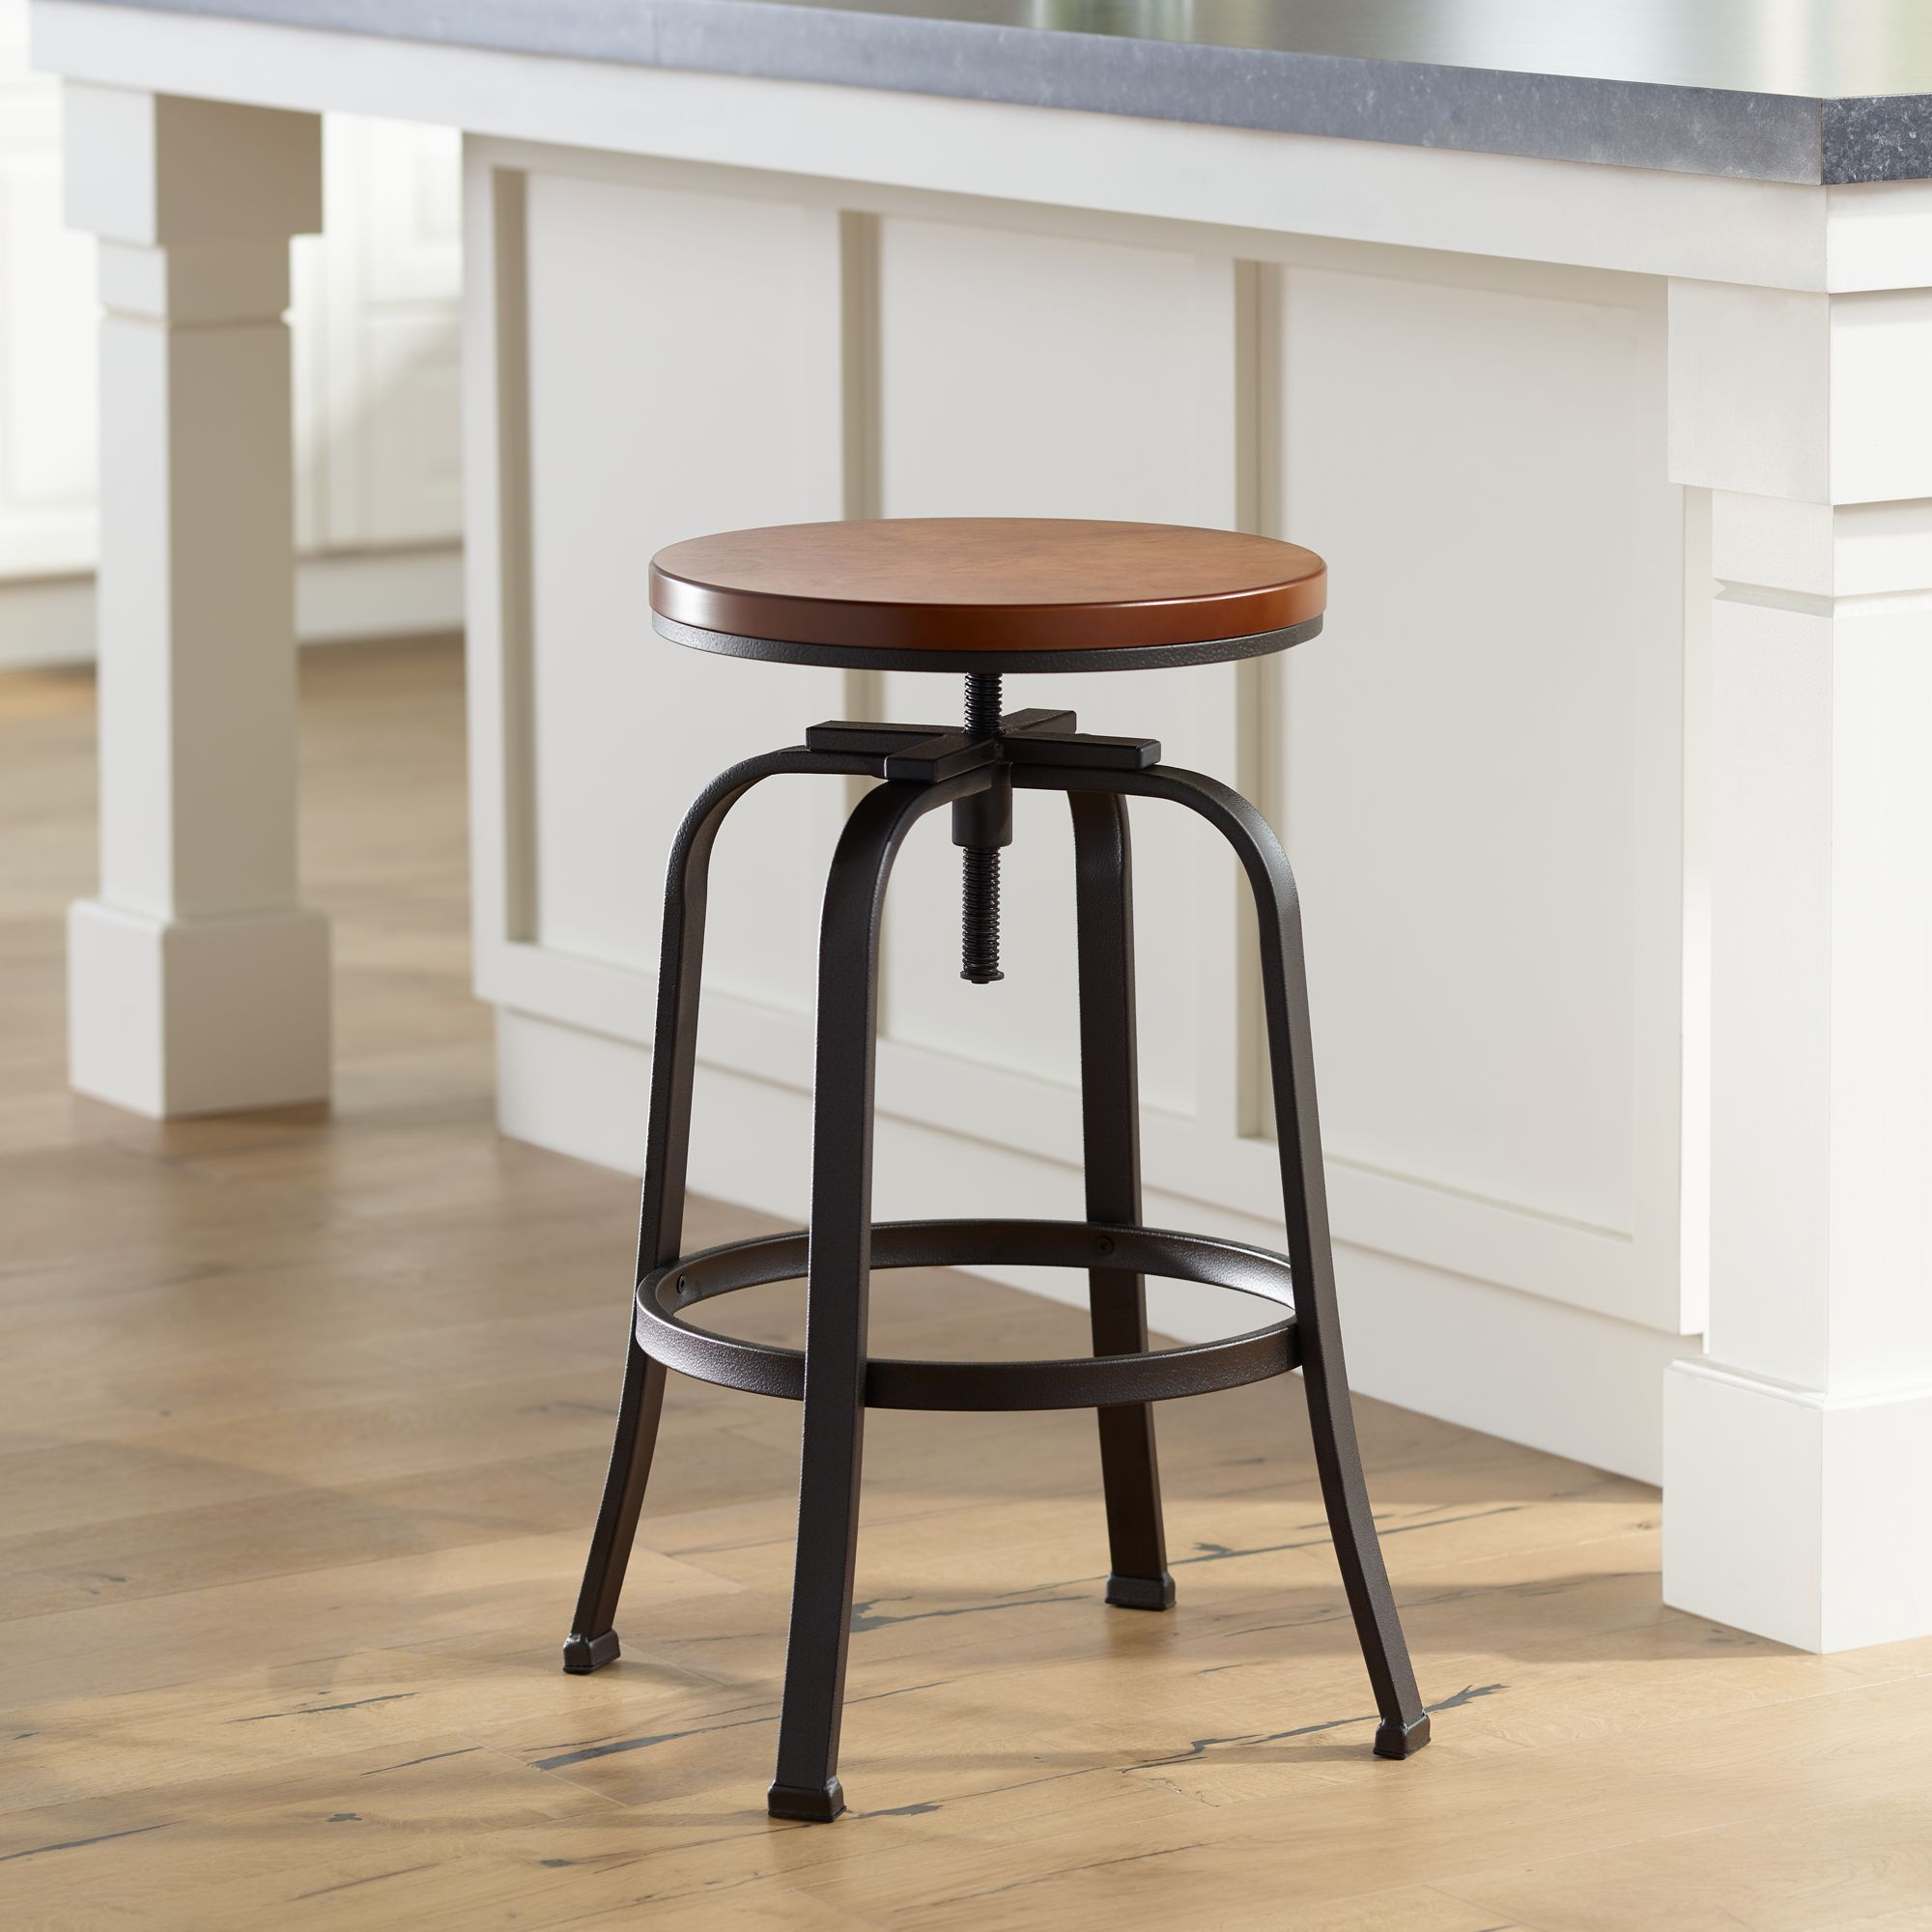 Bar Stool Height Details About Radin Hammered Bronze Adjustable Height Swivel Bar Stool